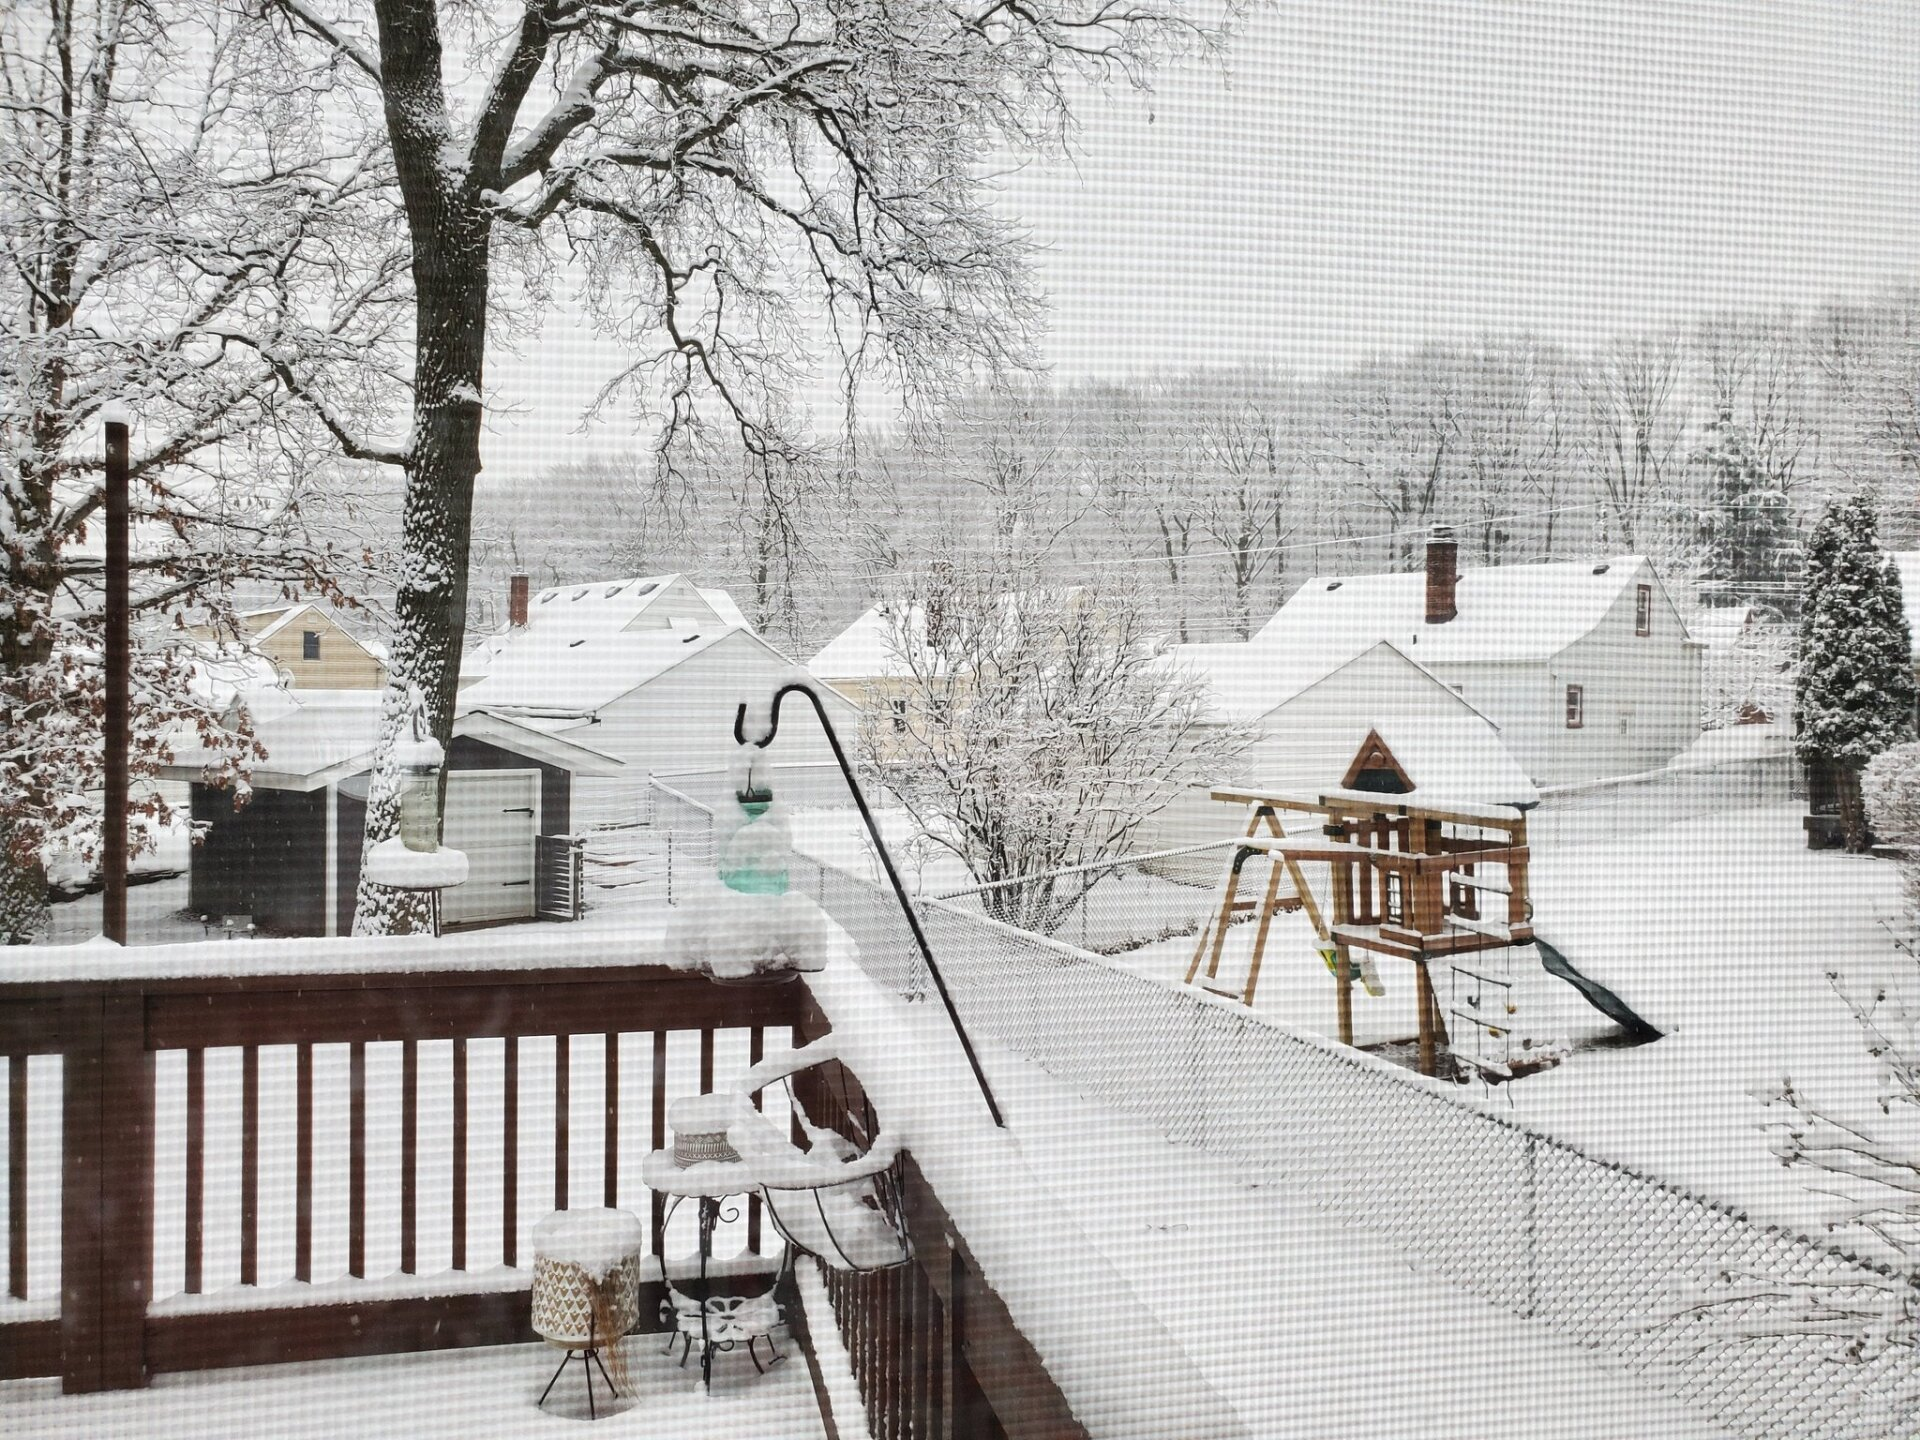 View of snow in Cleveland